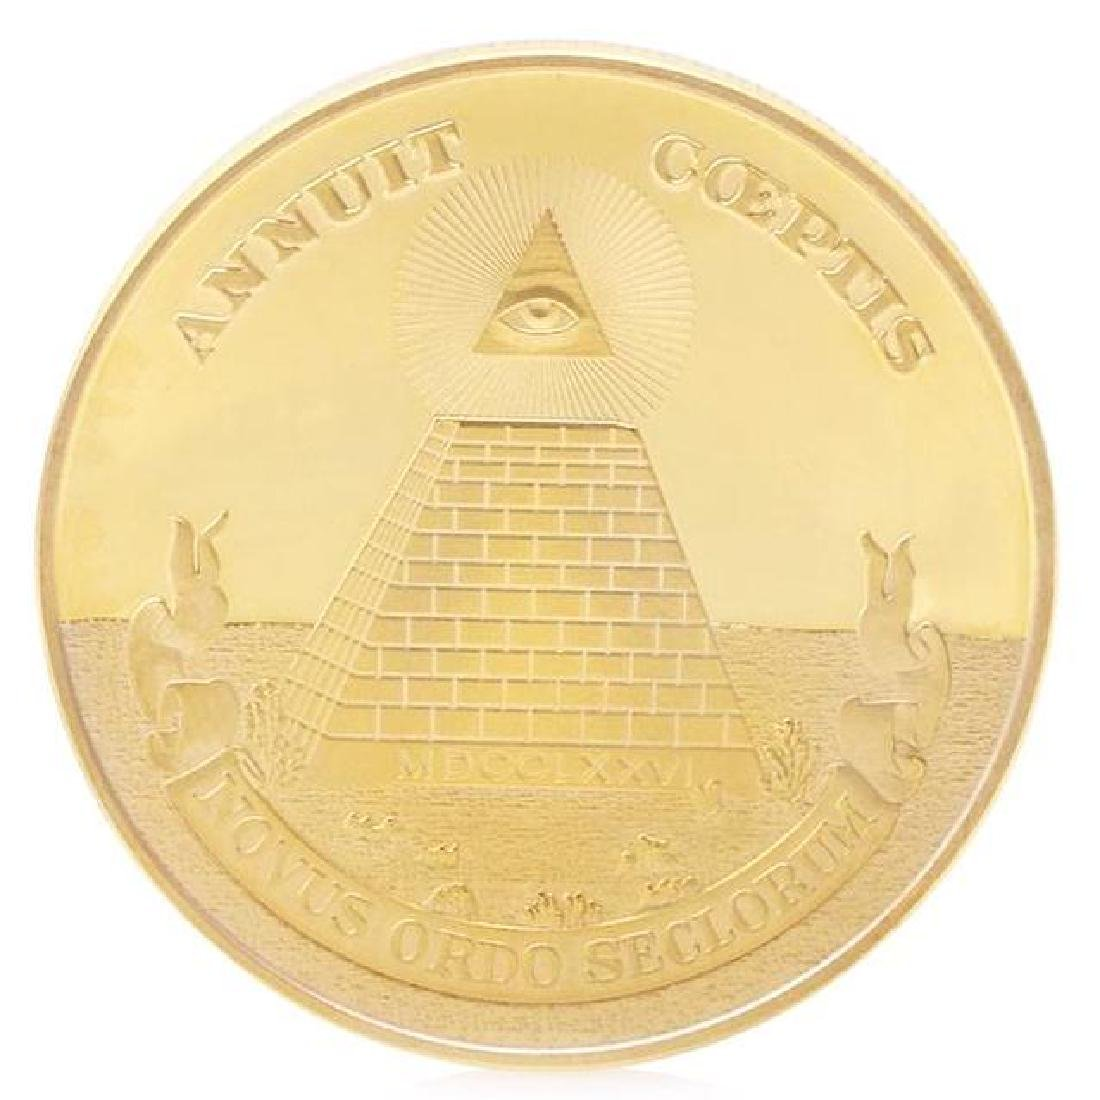 Illuminati Pyramid Gold Clad Coin